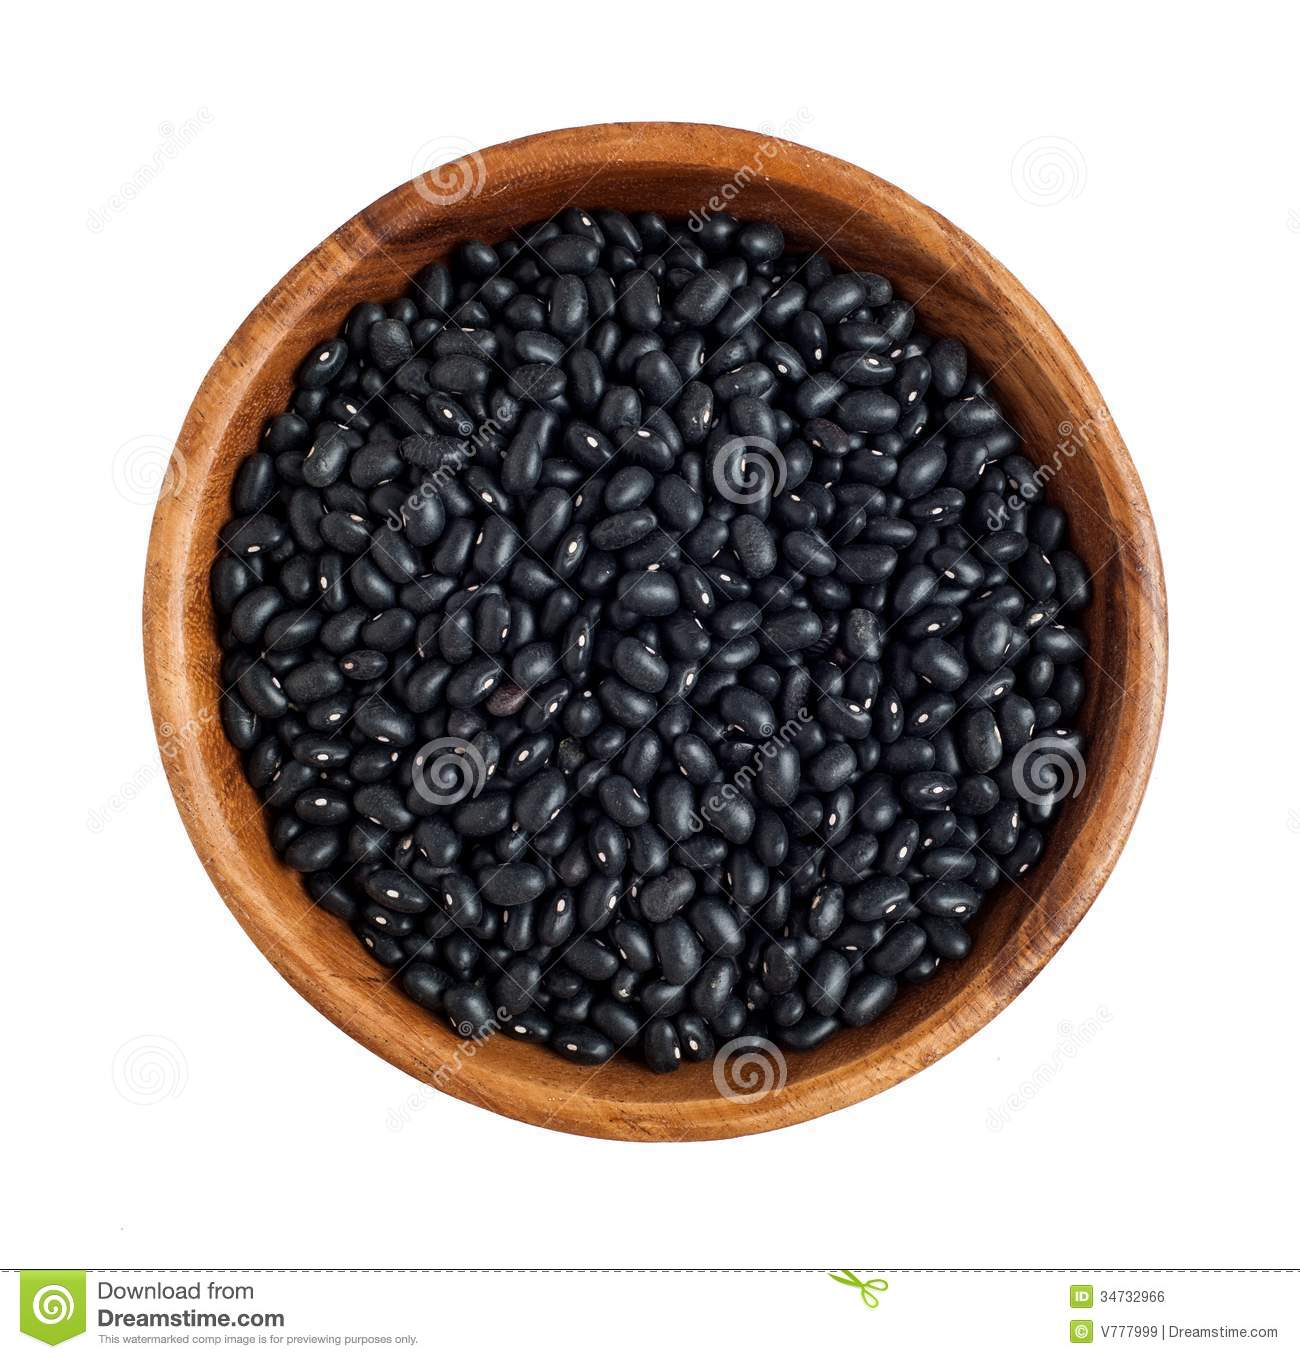 Top view of wooden bowl full of black beans.